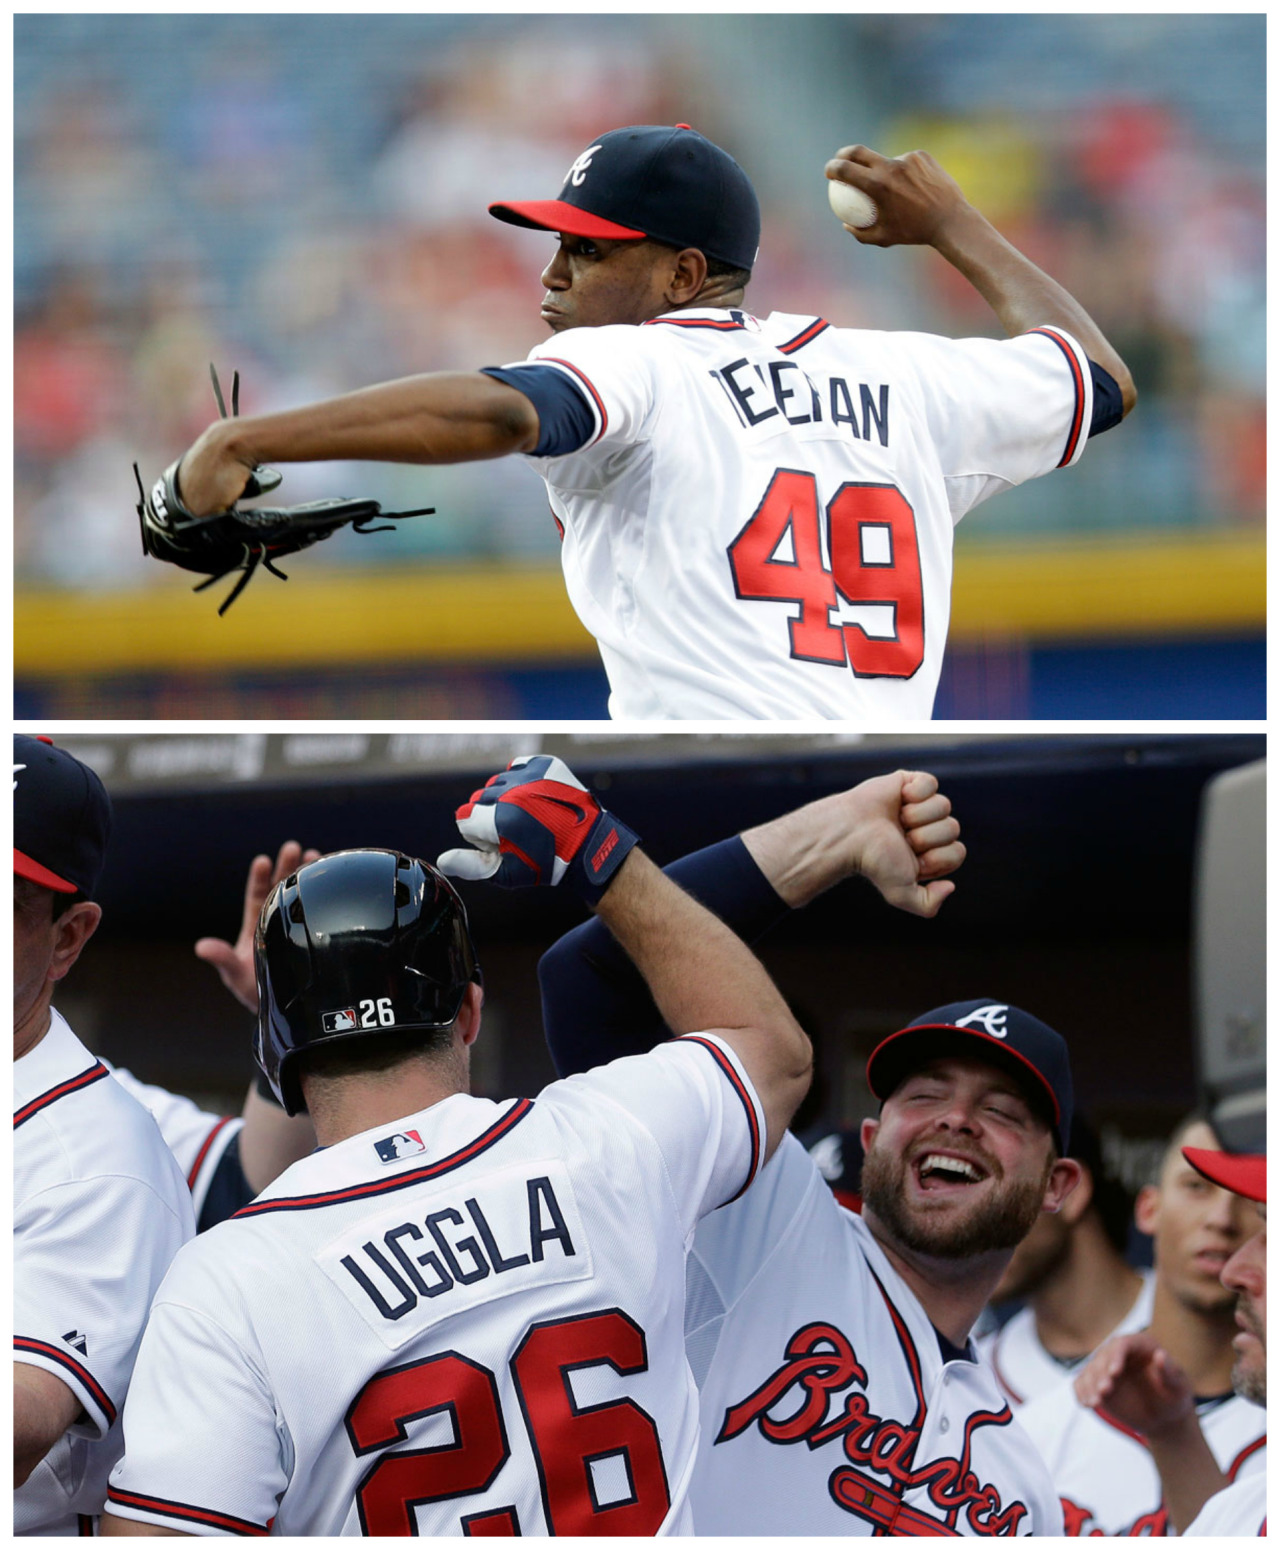 atlantabraves:  After a solid outing from Julio Teheran and a three-run homer from Dan Uggla, the Braves knock off the Twins 5-1 in Atlanta.